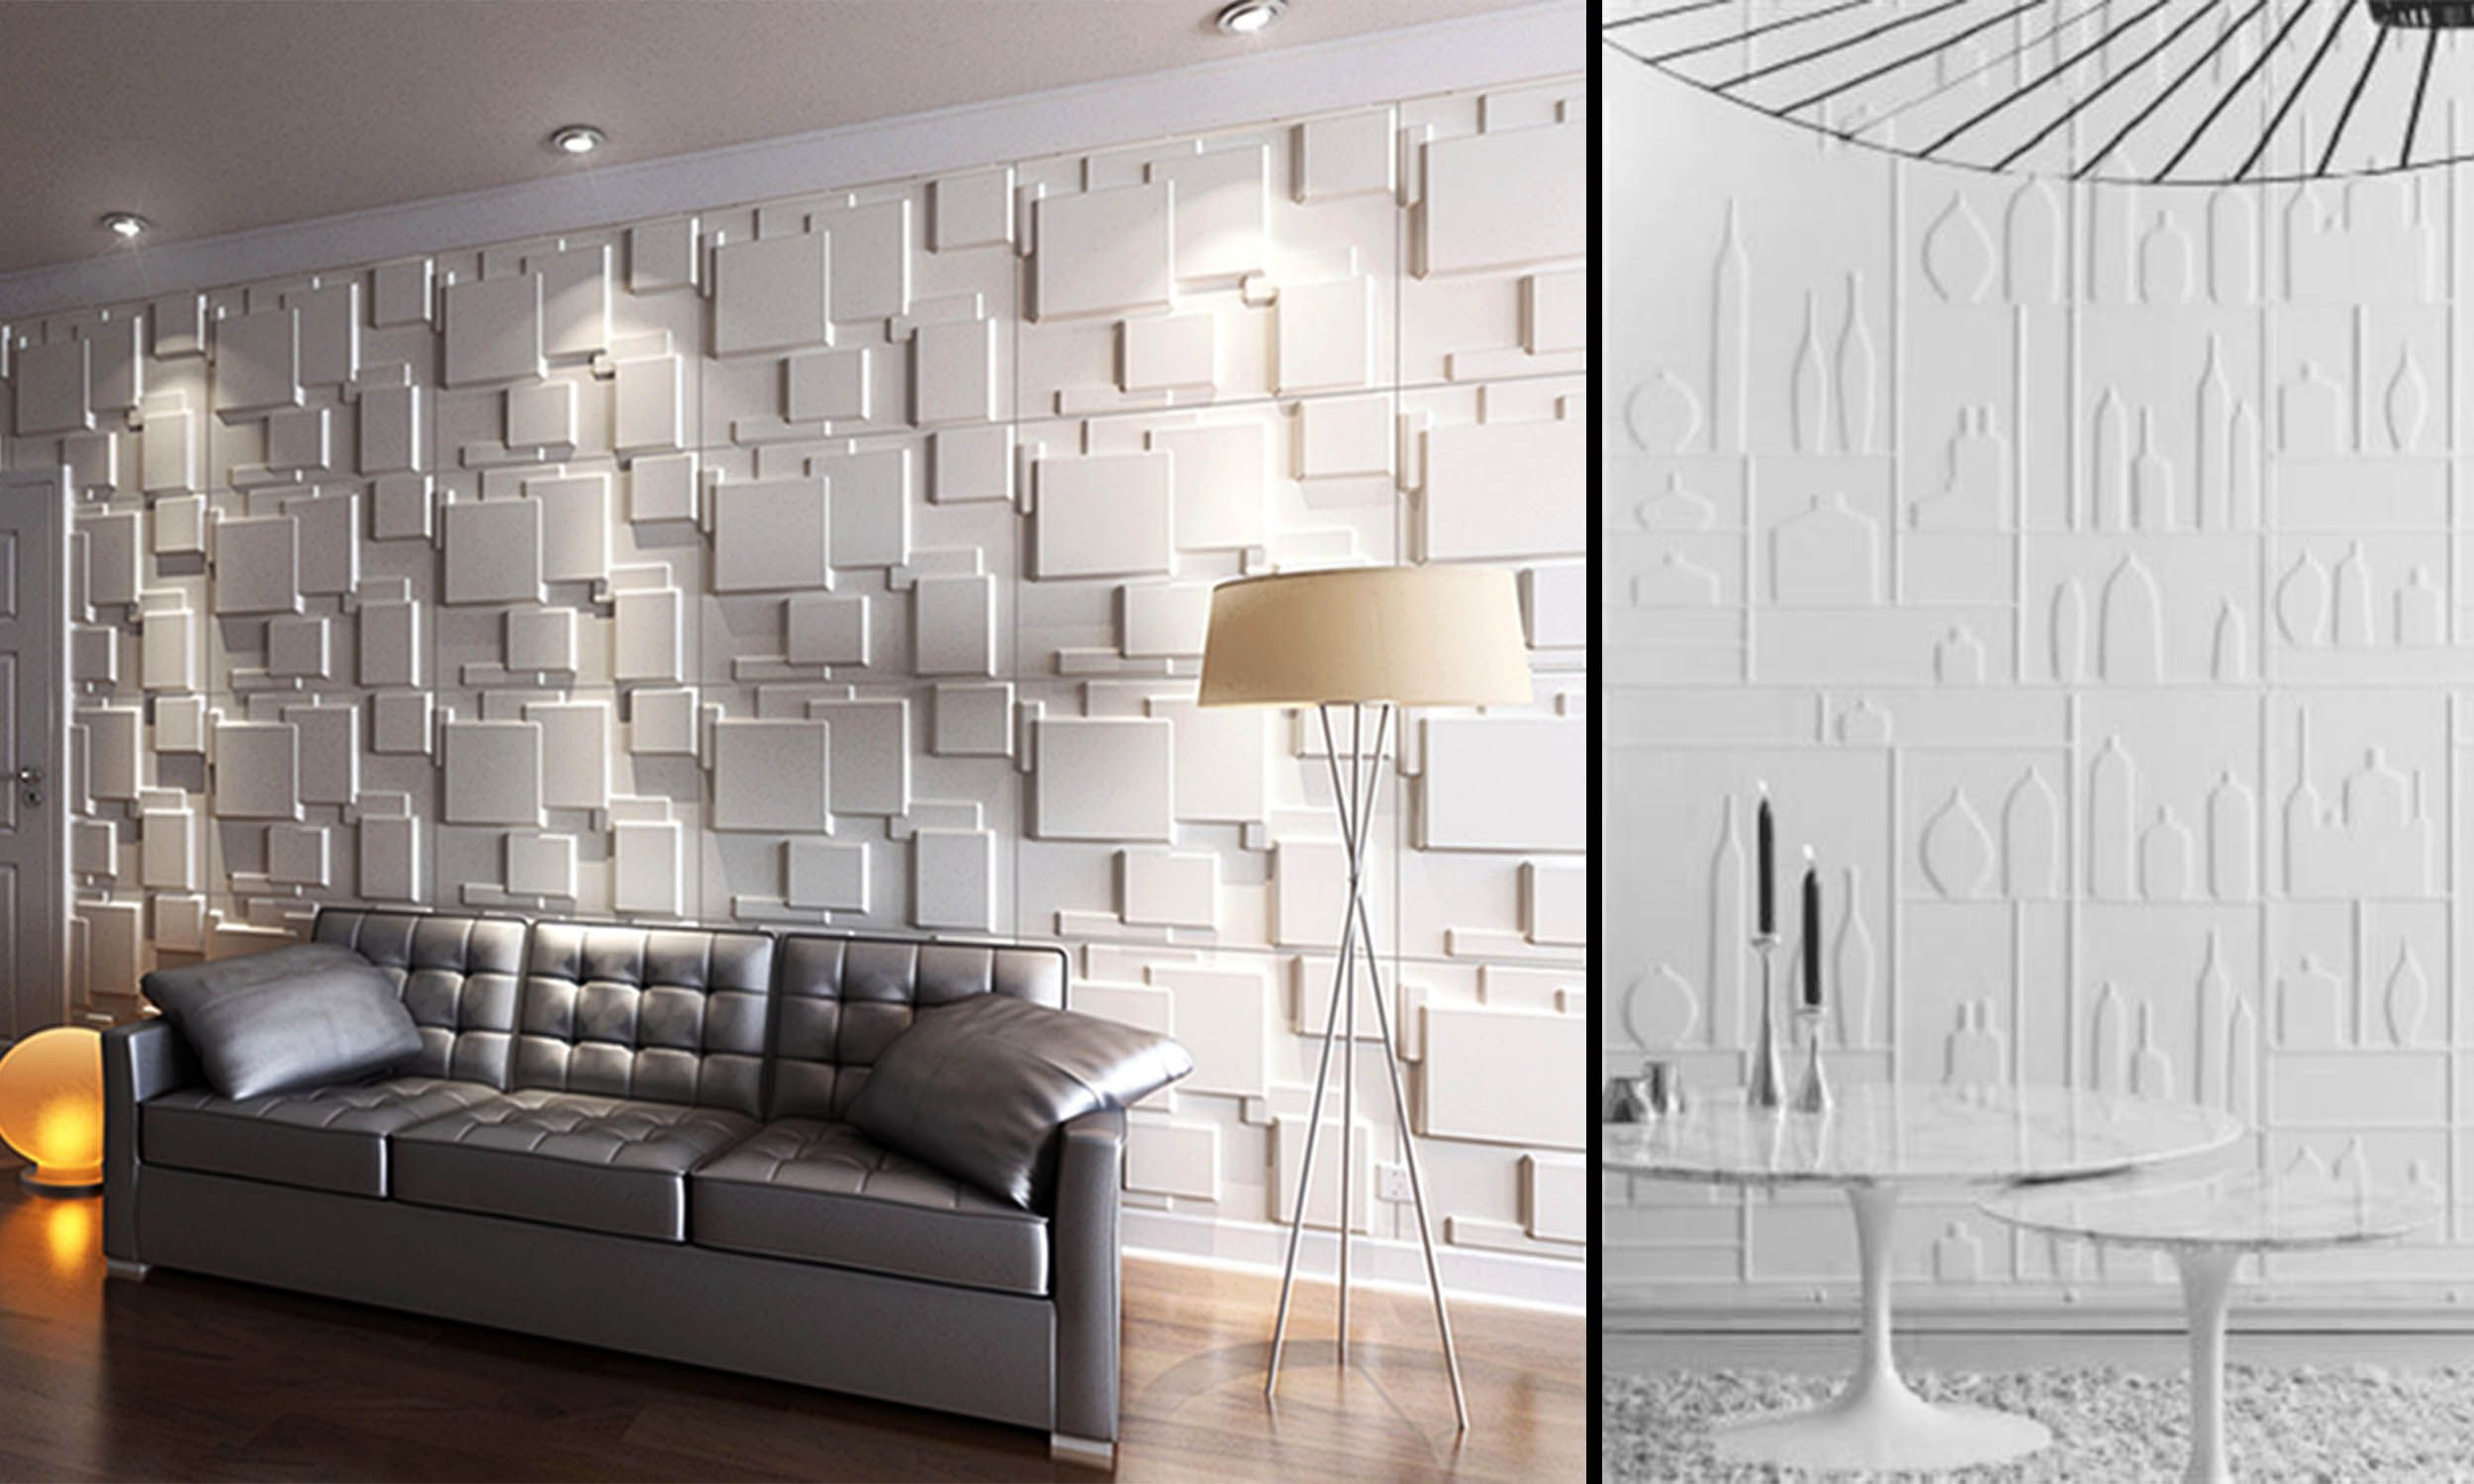 Interior Design Paint Relief Patterns Walls - Google Search